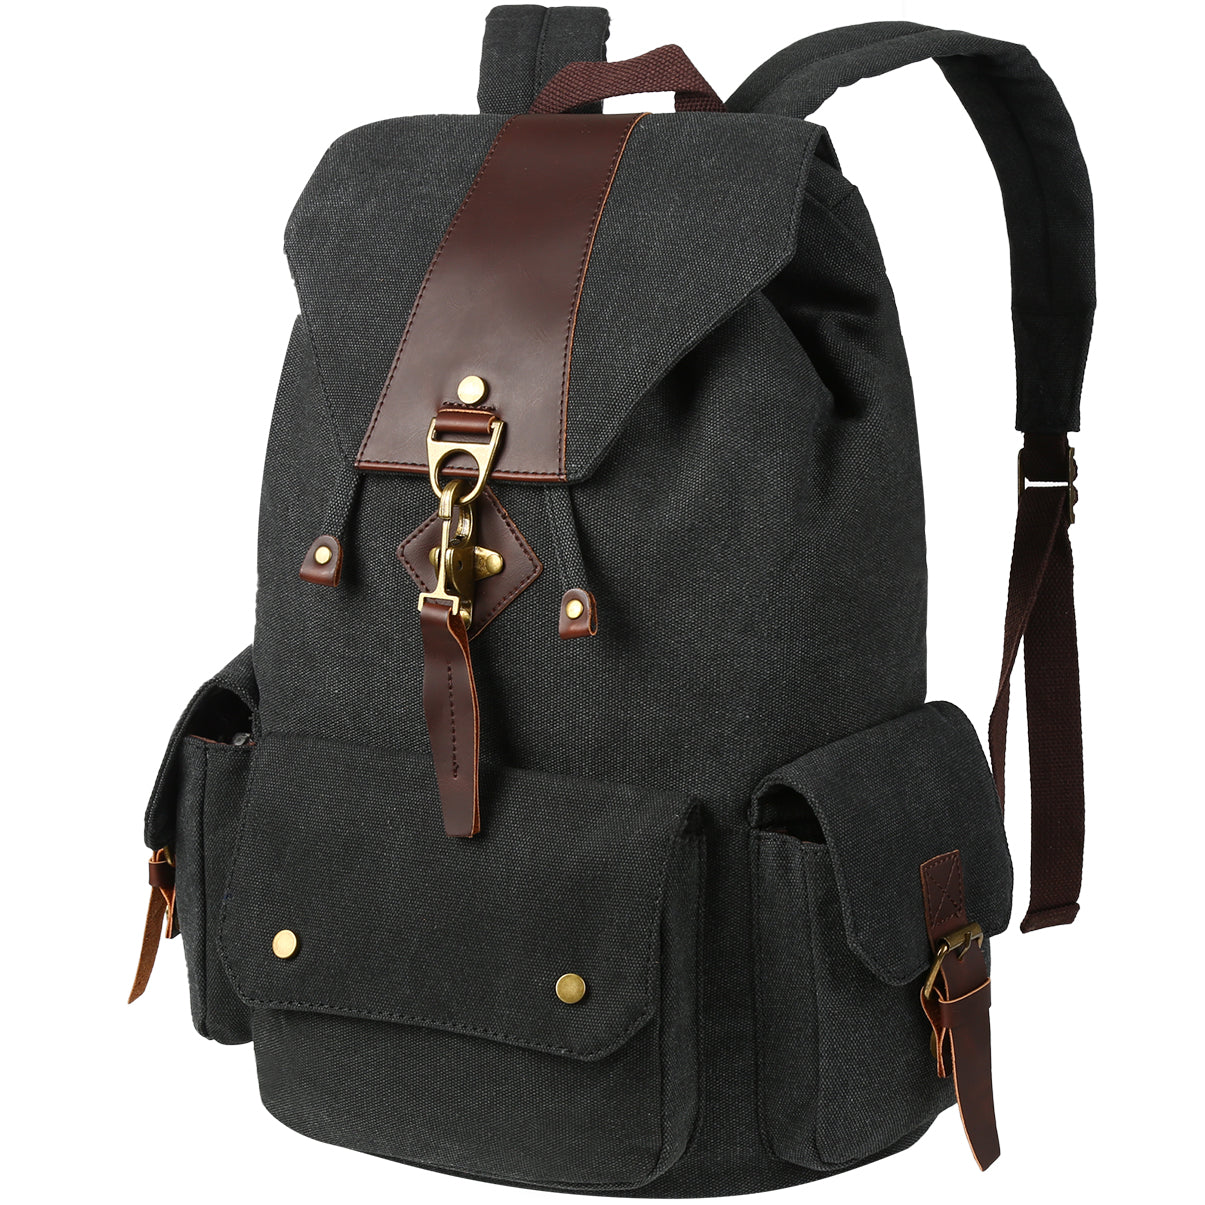 Styling tips for Canvas and Leather Backpacks